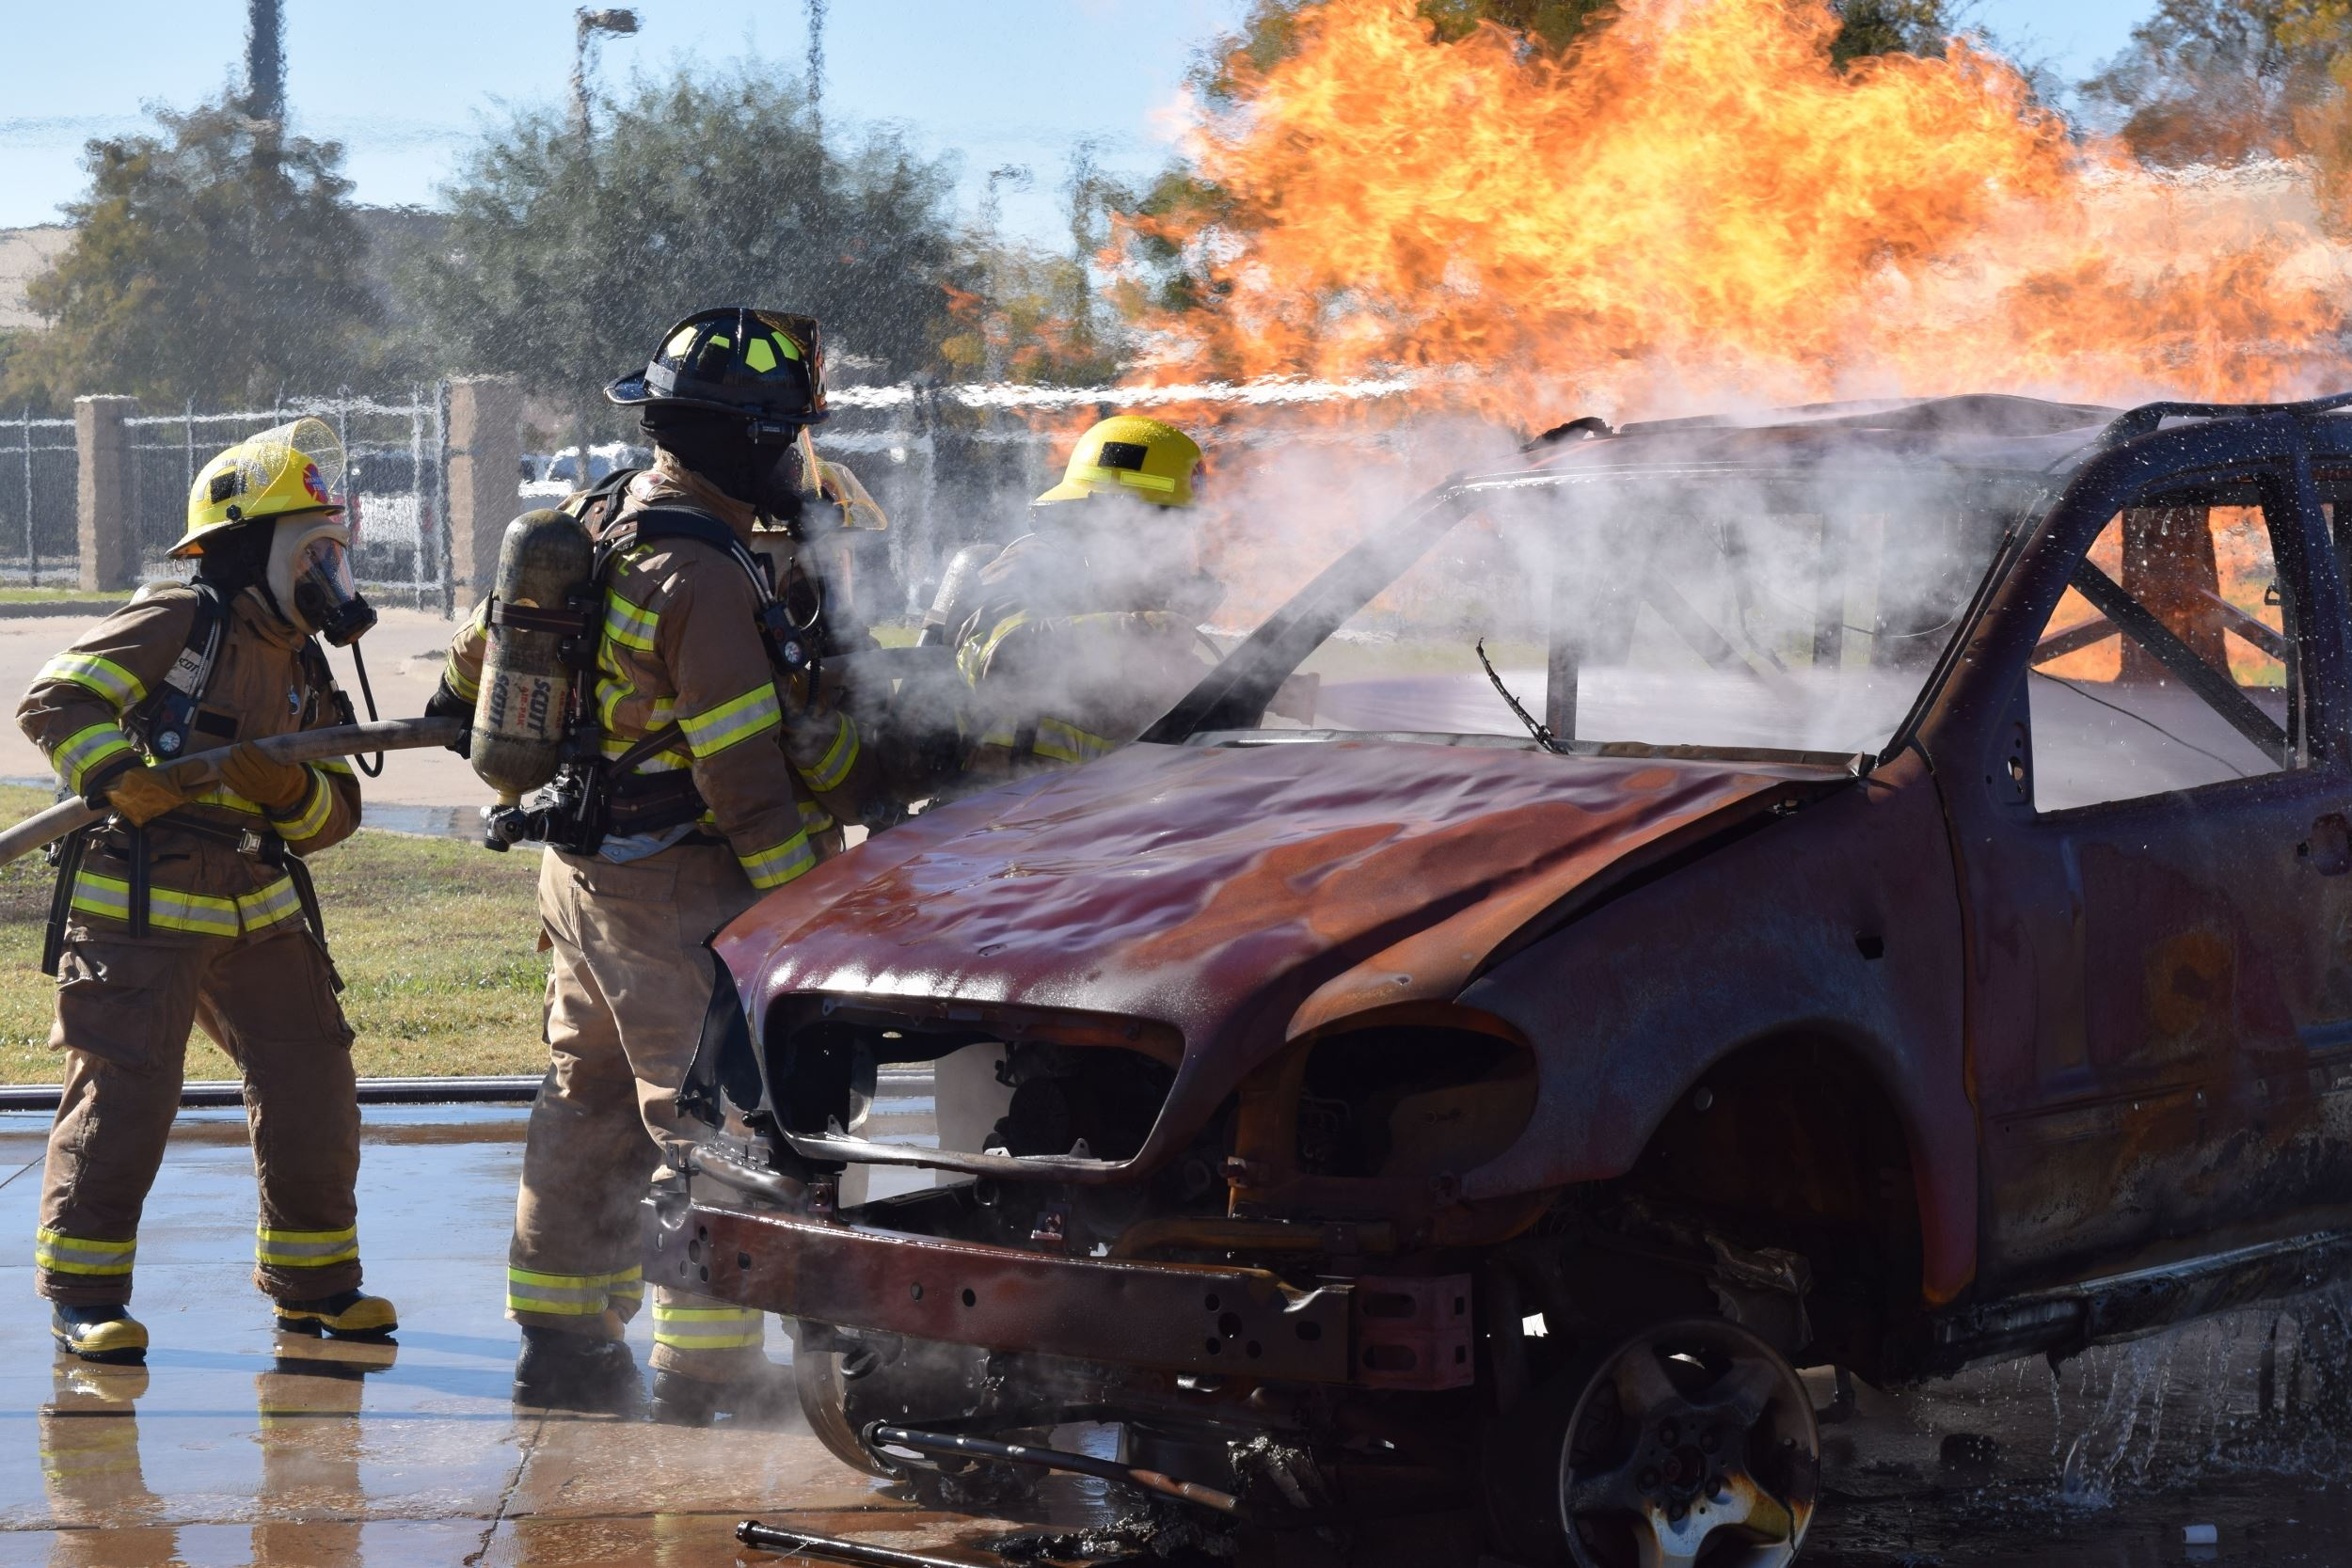 Citizens Fire Academy burn day (2500x1667)